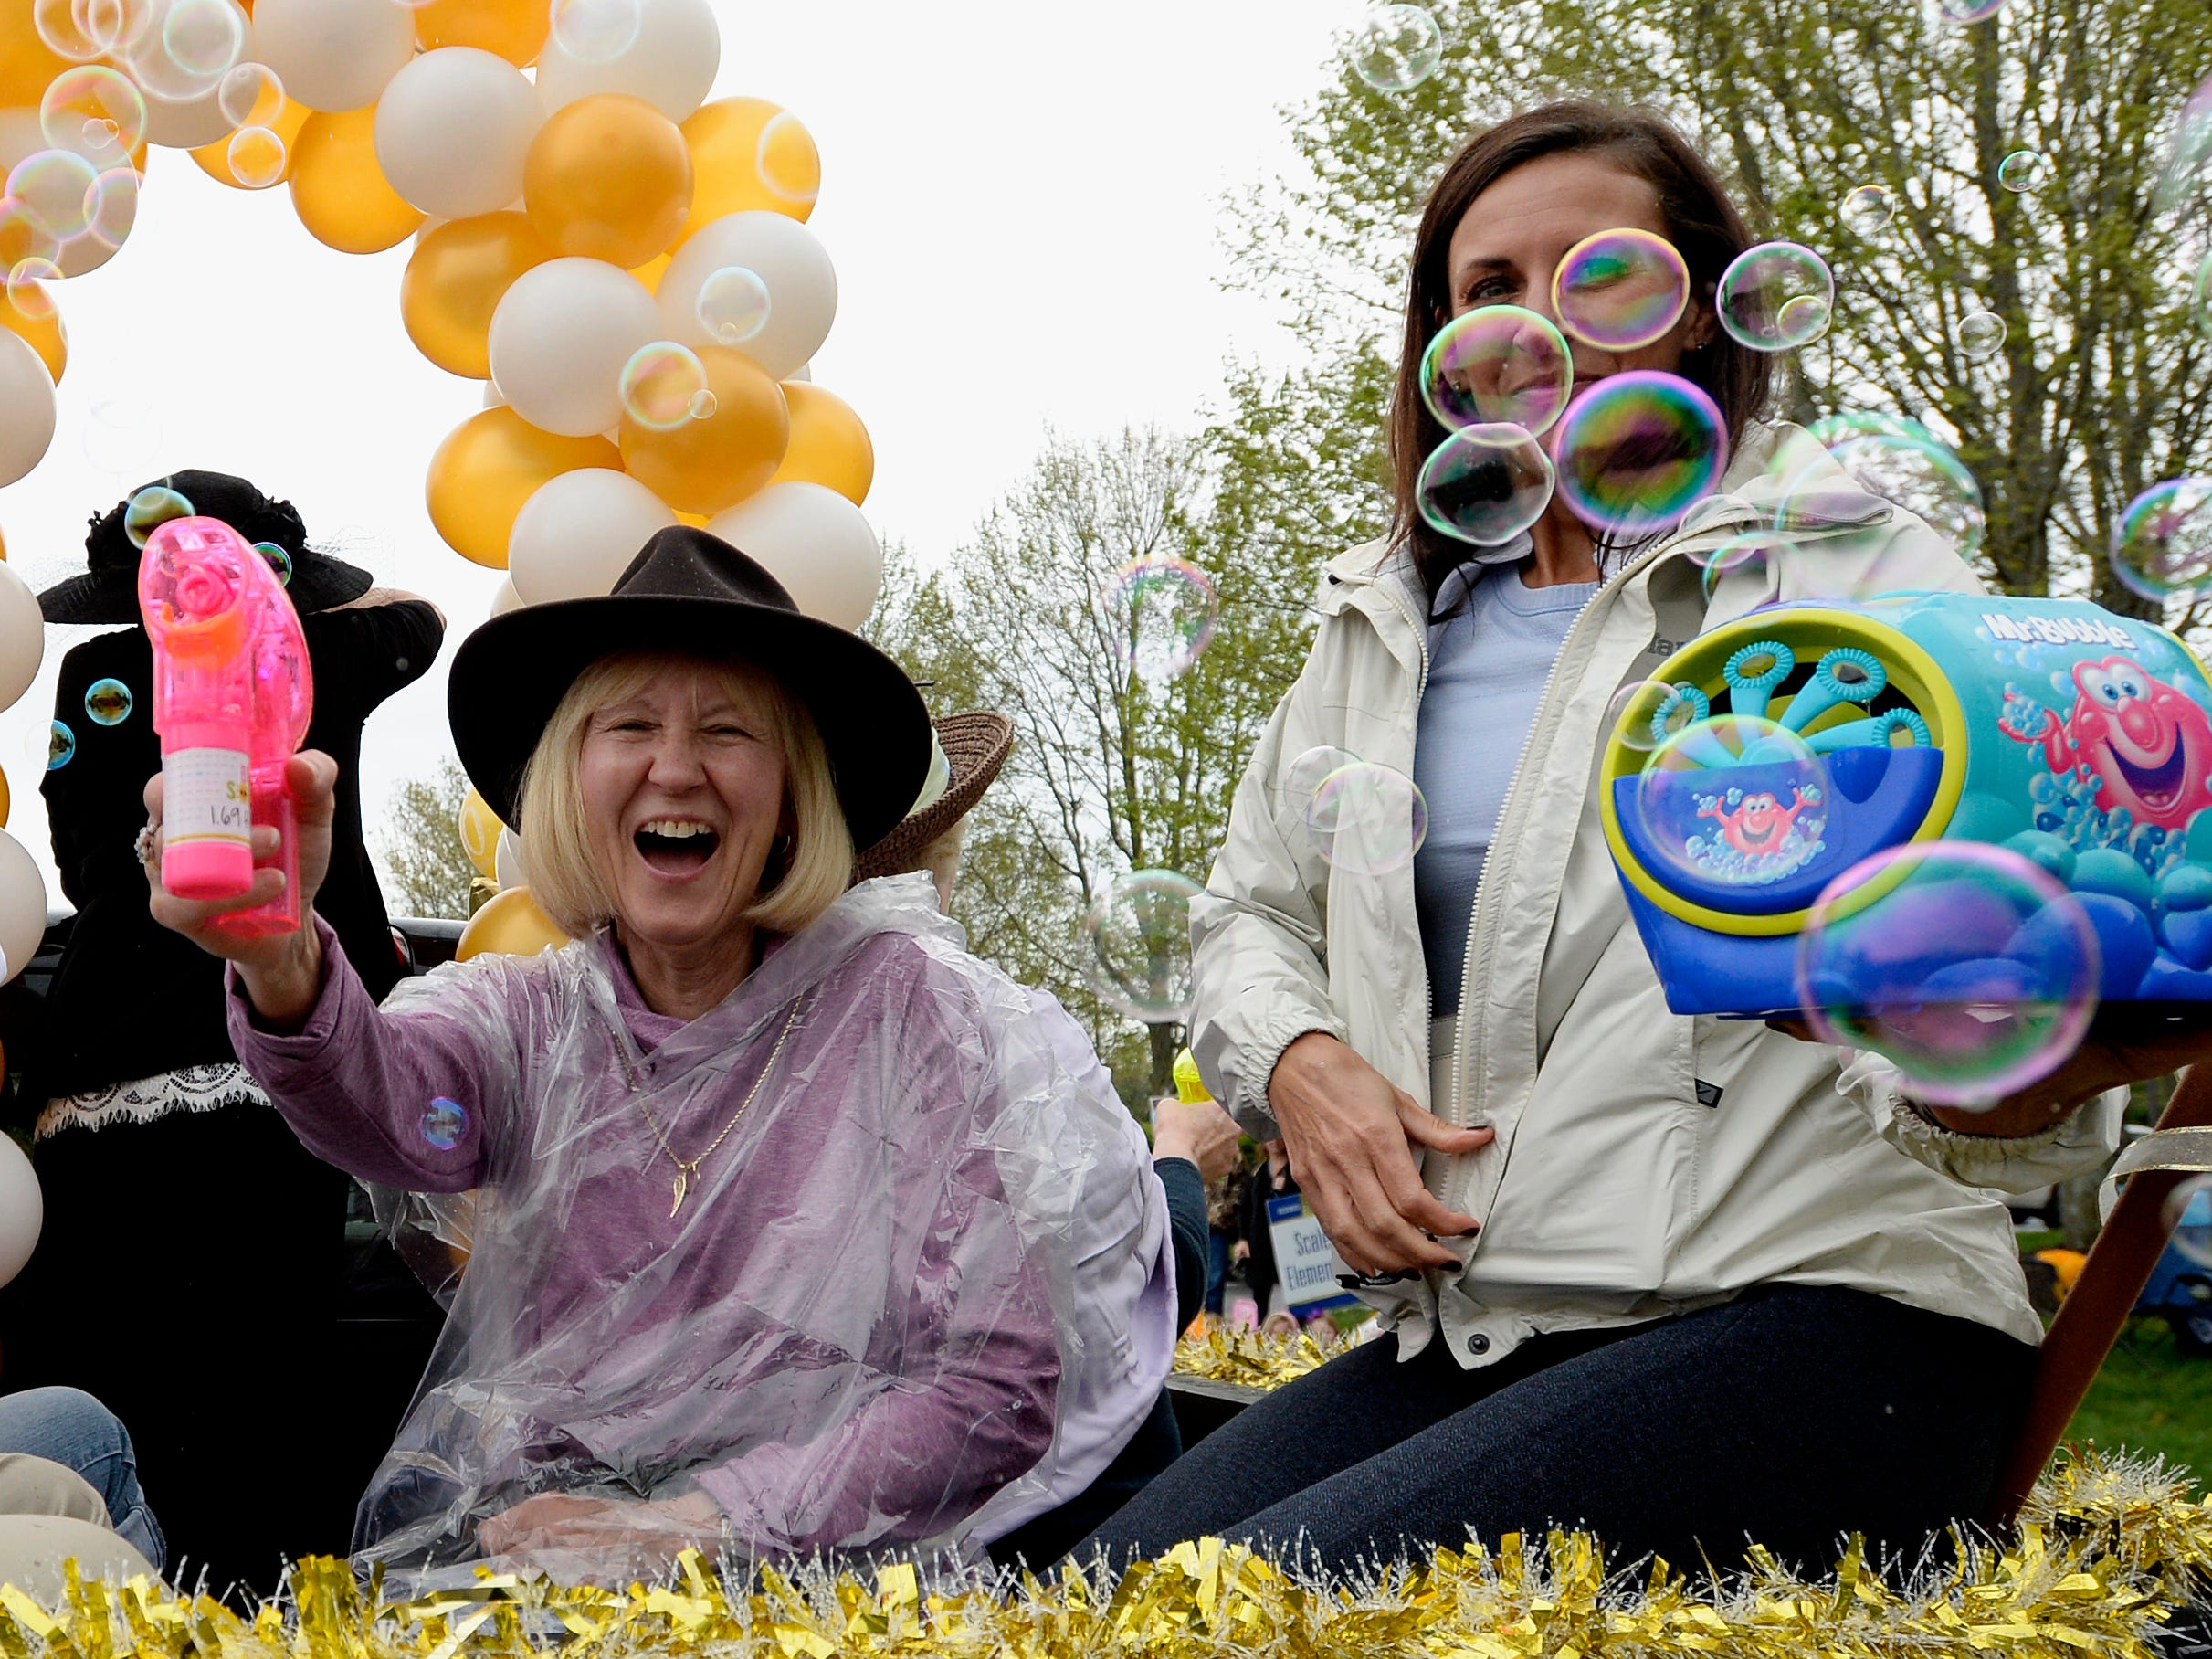 """Participants blow bubbles as they ride on a float during Brentwood's """"A Golden Gallop"""" parade celebrating its 50th year as a community on Saturday, April 13, 2019, in Brentwood, Tenn."""